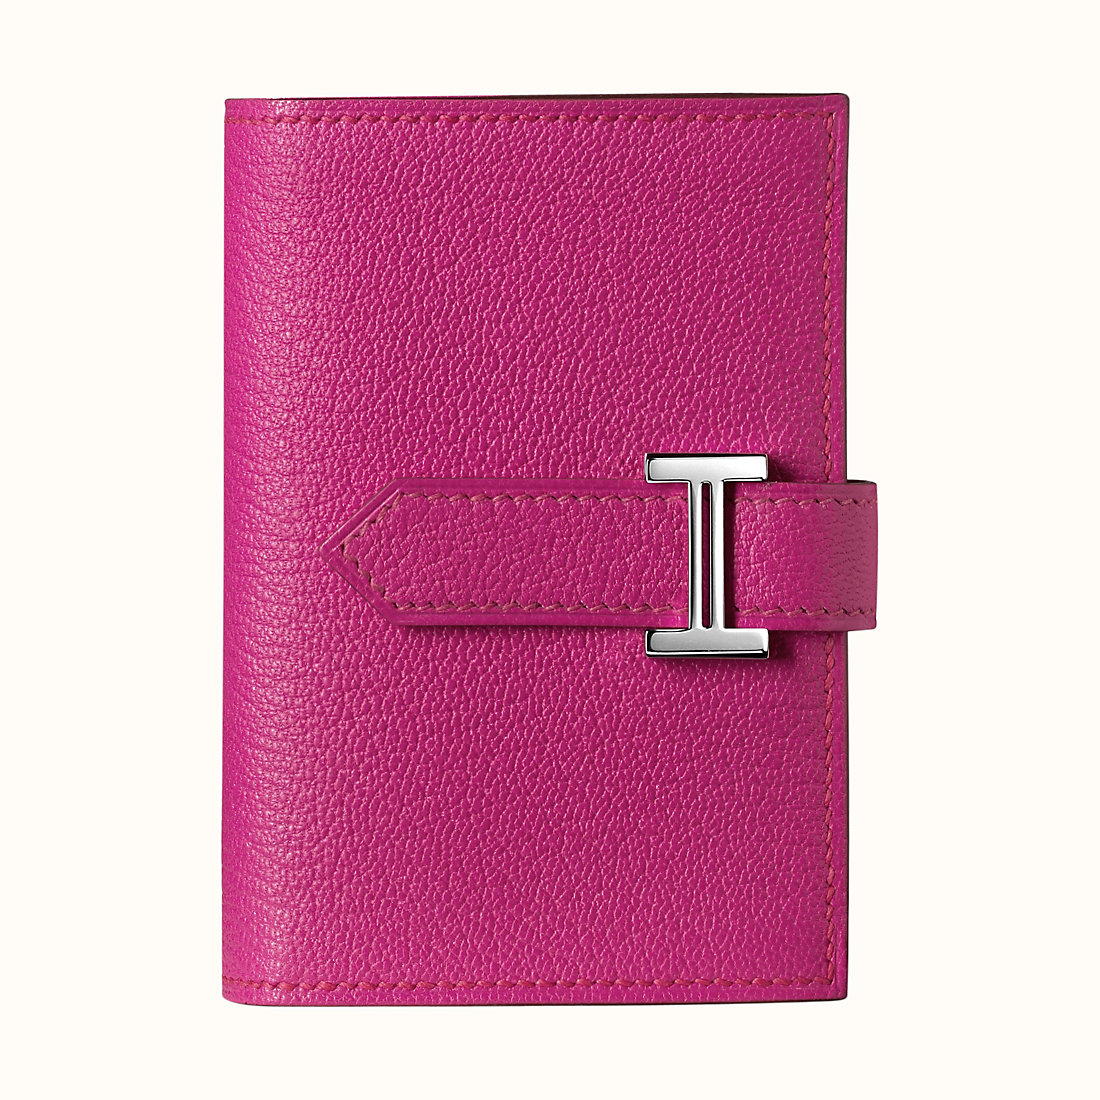 臺灣桃園縣愛馬仕短錢包 Hermes Bearn mini wallet CKL3 Rose Pourpre